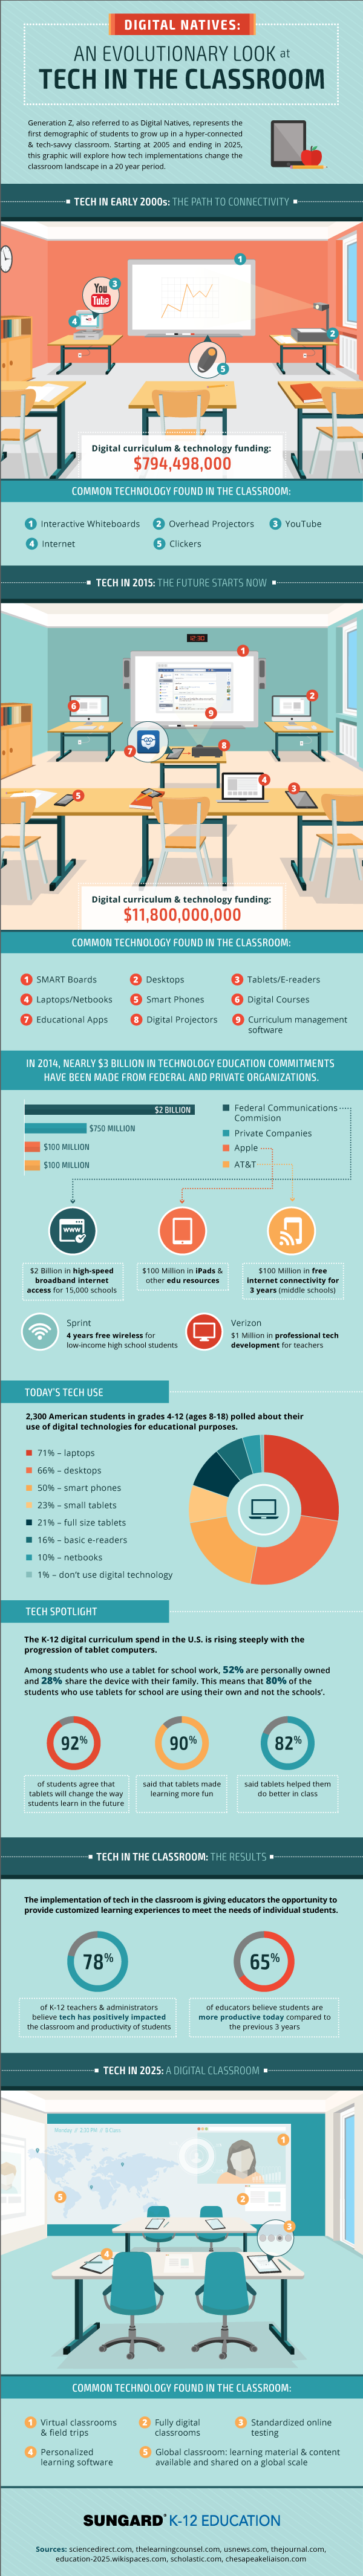 An Evolutionary Look at Tech in the Classroom #infographic